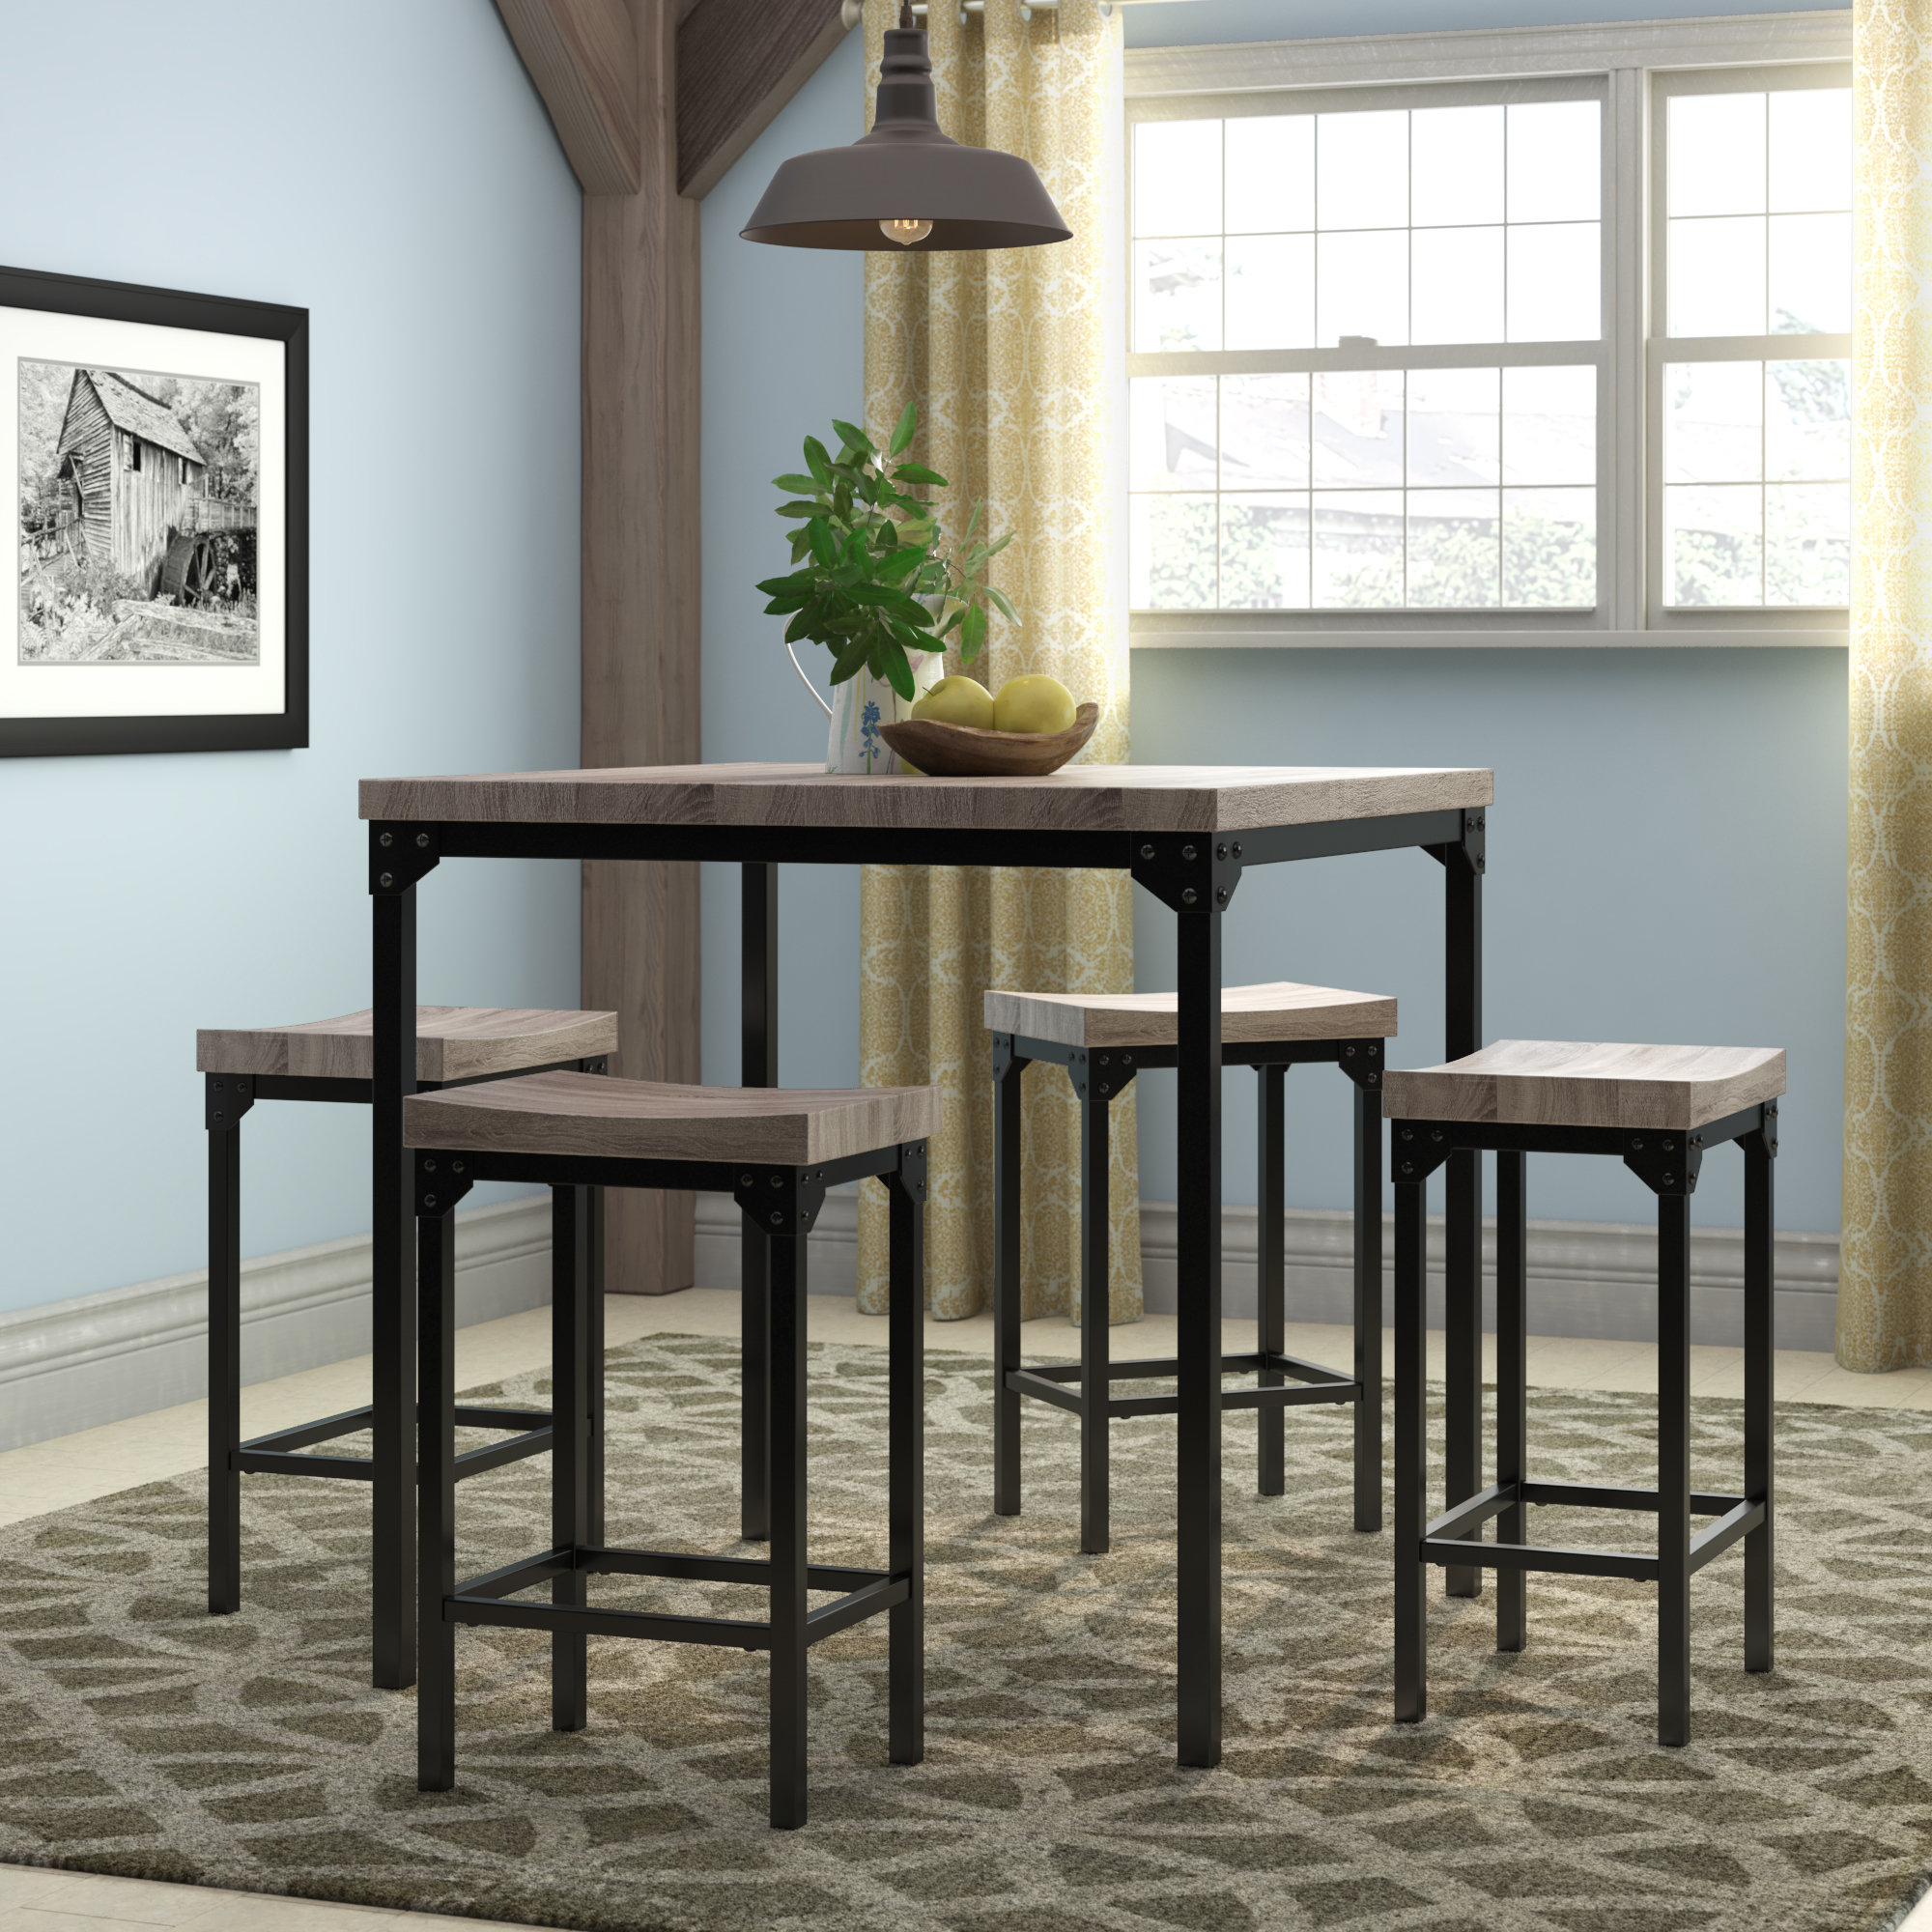 Preferred Bryson 5 Piece Dining Sets Pertaining To Gracie Oaks Wegner 5 Piece Counter Height Dining Set & Reviews (View 22 of 25)